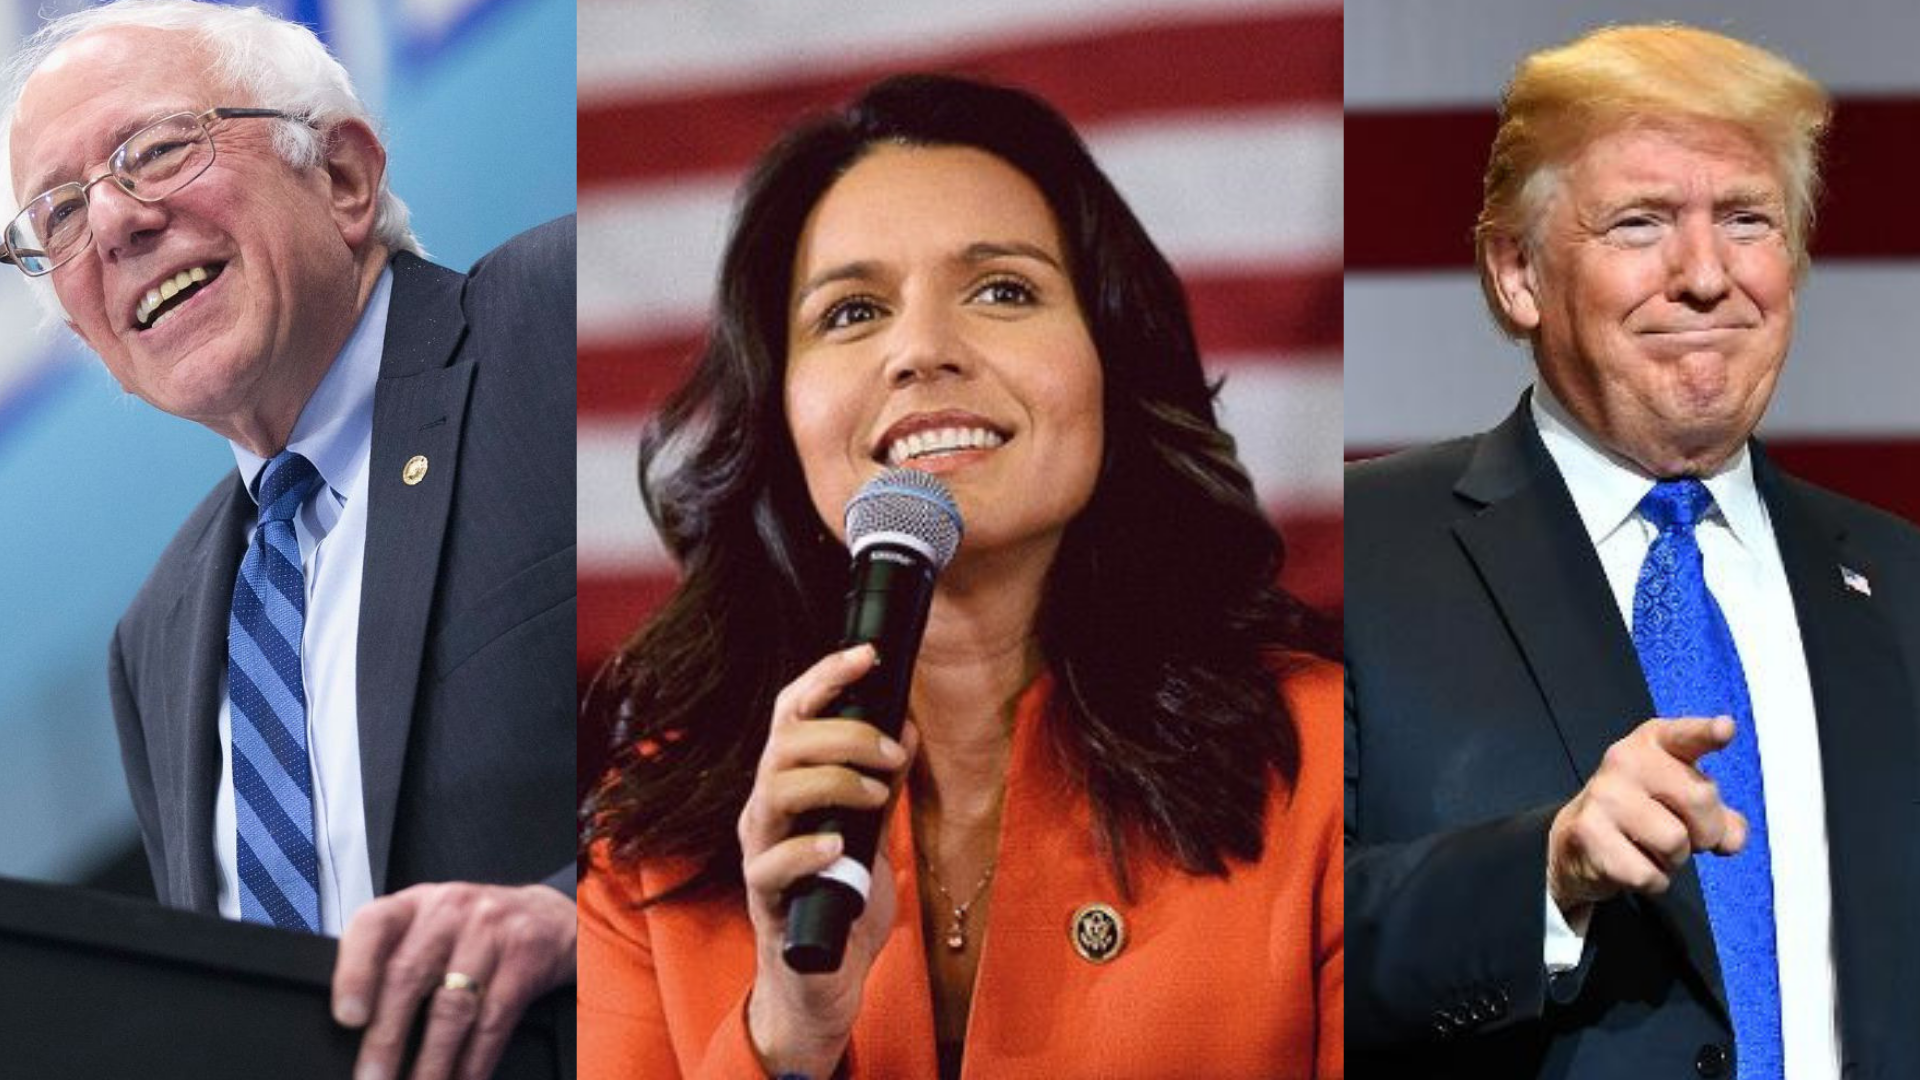 IVN POLL: Independents Like Bernie, Tulsi, and Trump for 2020